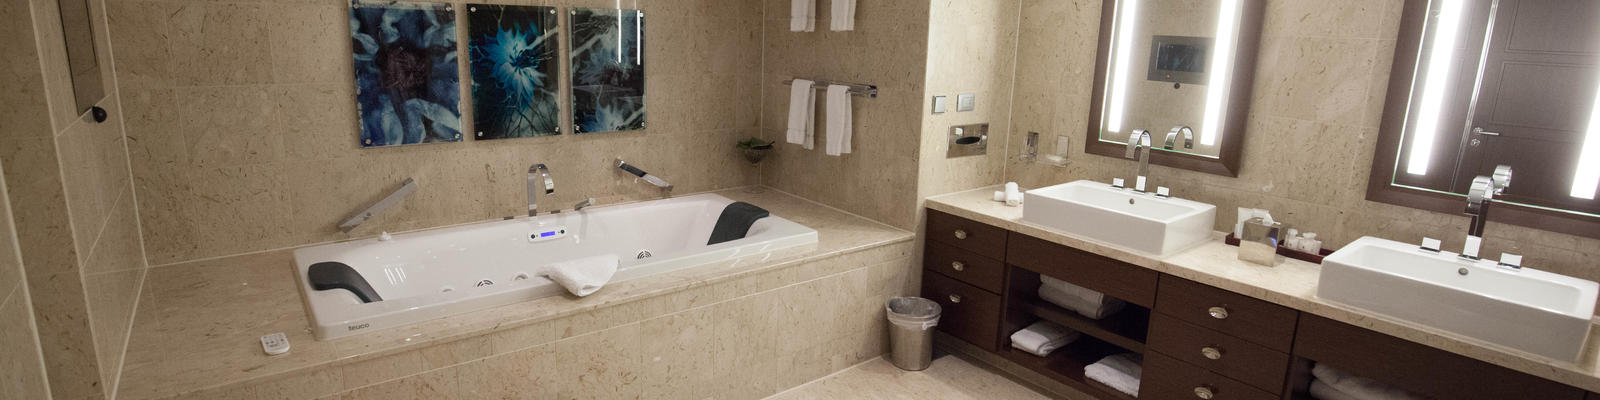 The Penthouse Suite Bathroom On Celebrity Reflection (Photo: Cruise Critic)